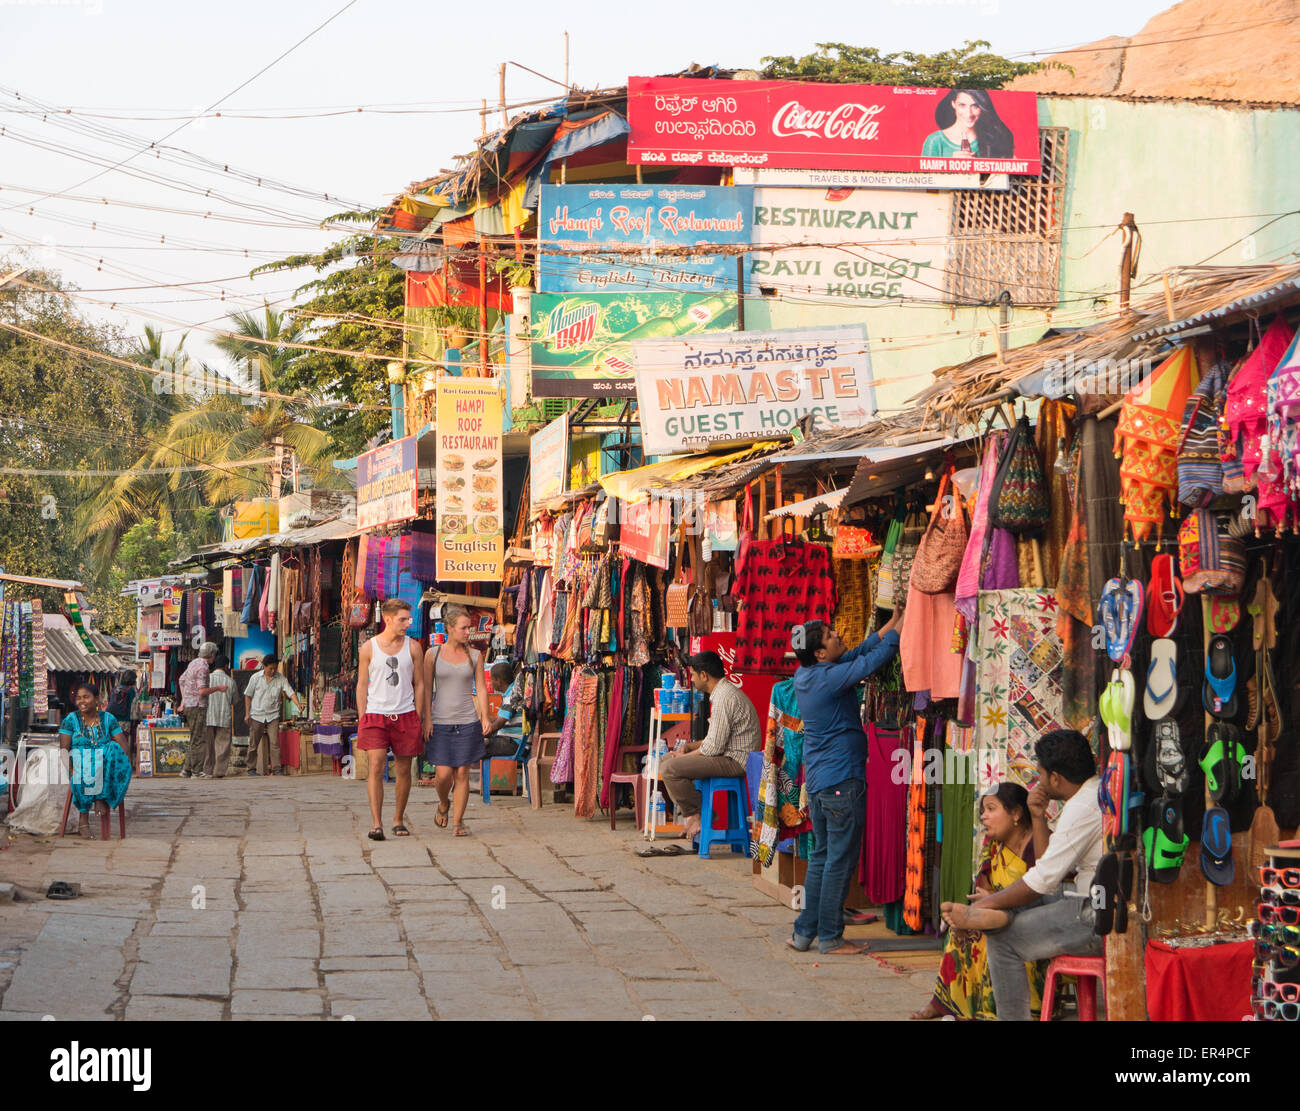 Hampi market and restaurants India Stock Photo